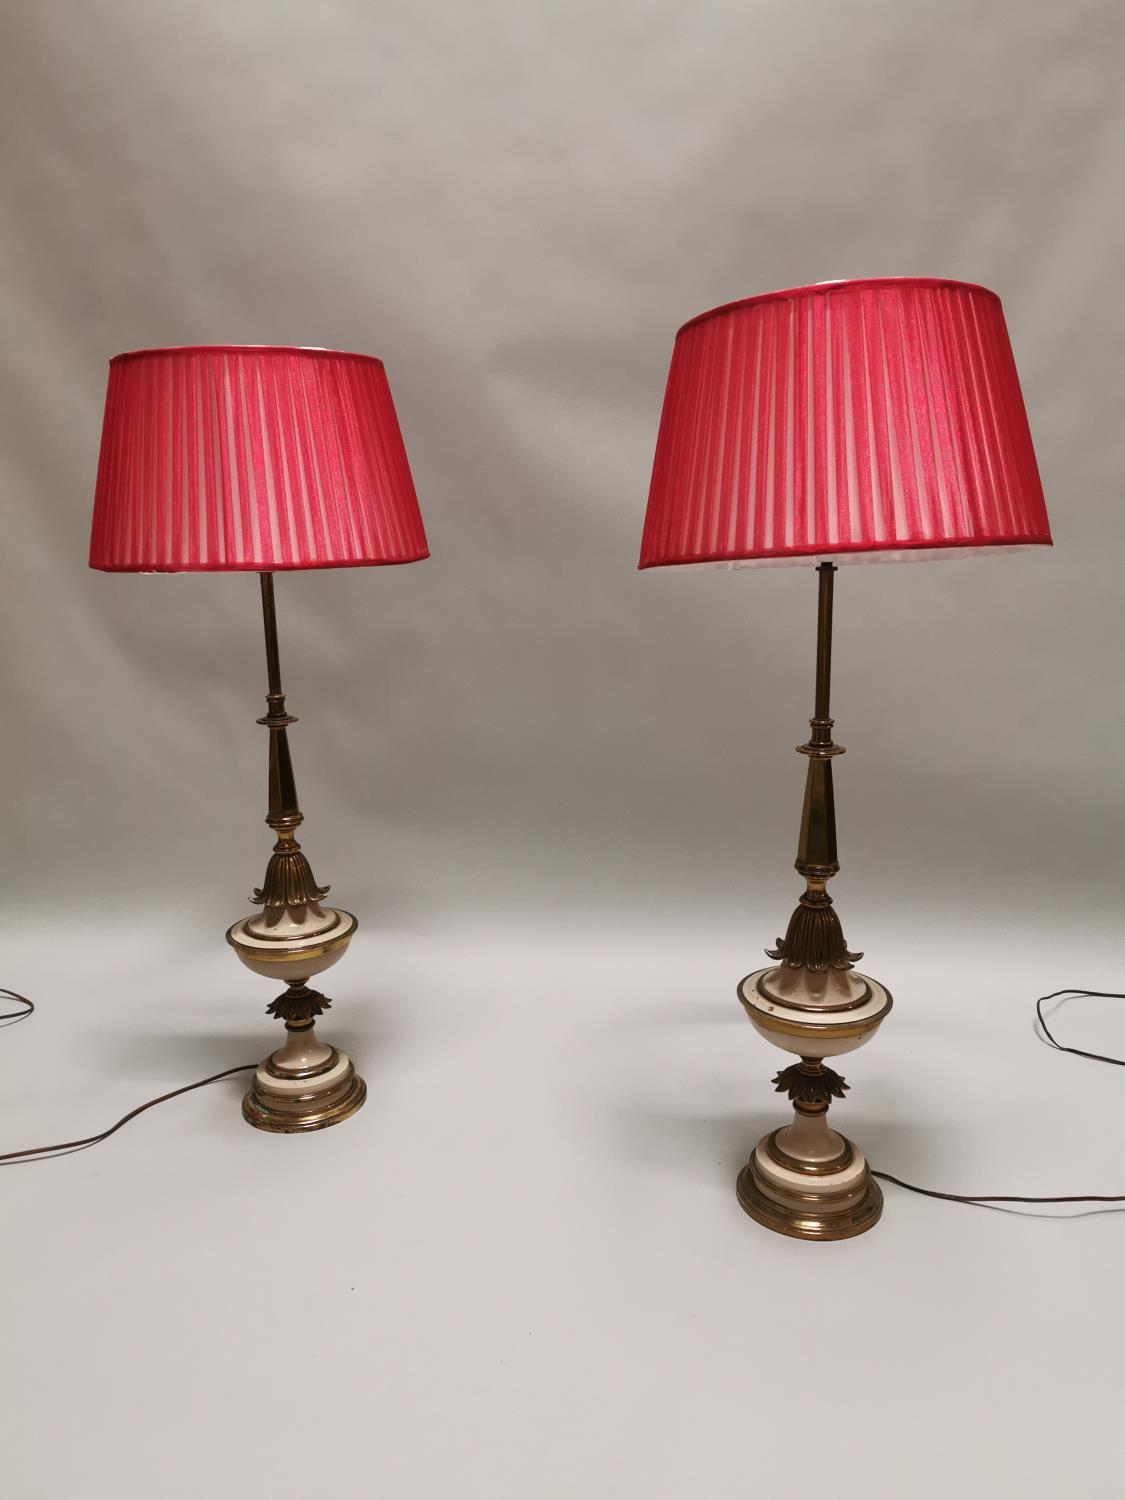 Good quality pair of table lamps